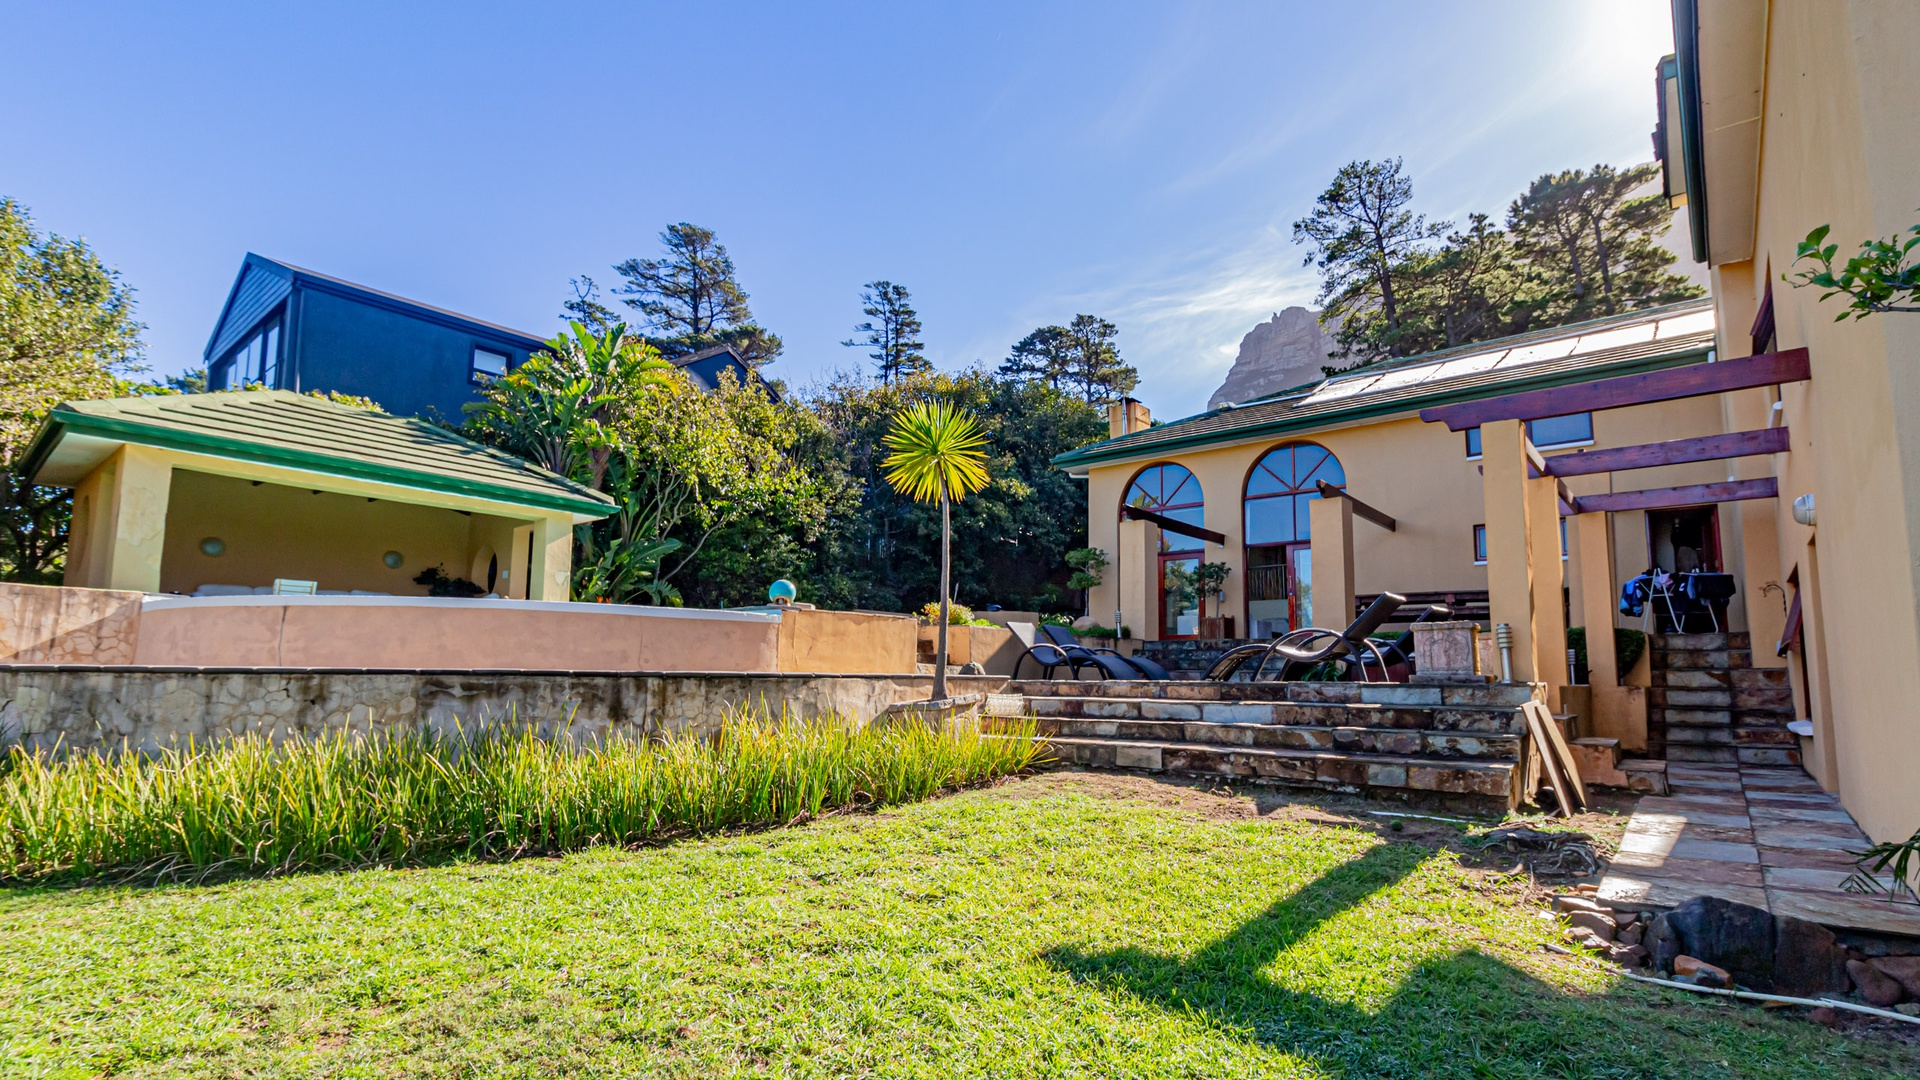 House in Hout Bay - Image-042.jpg